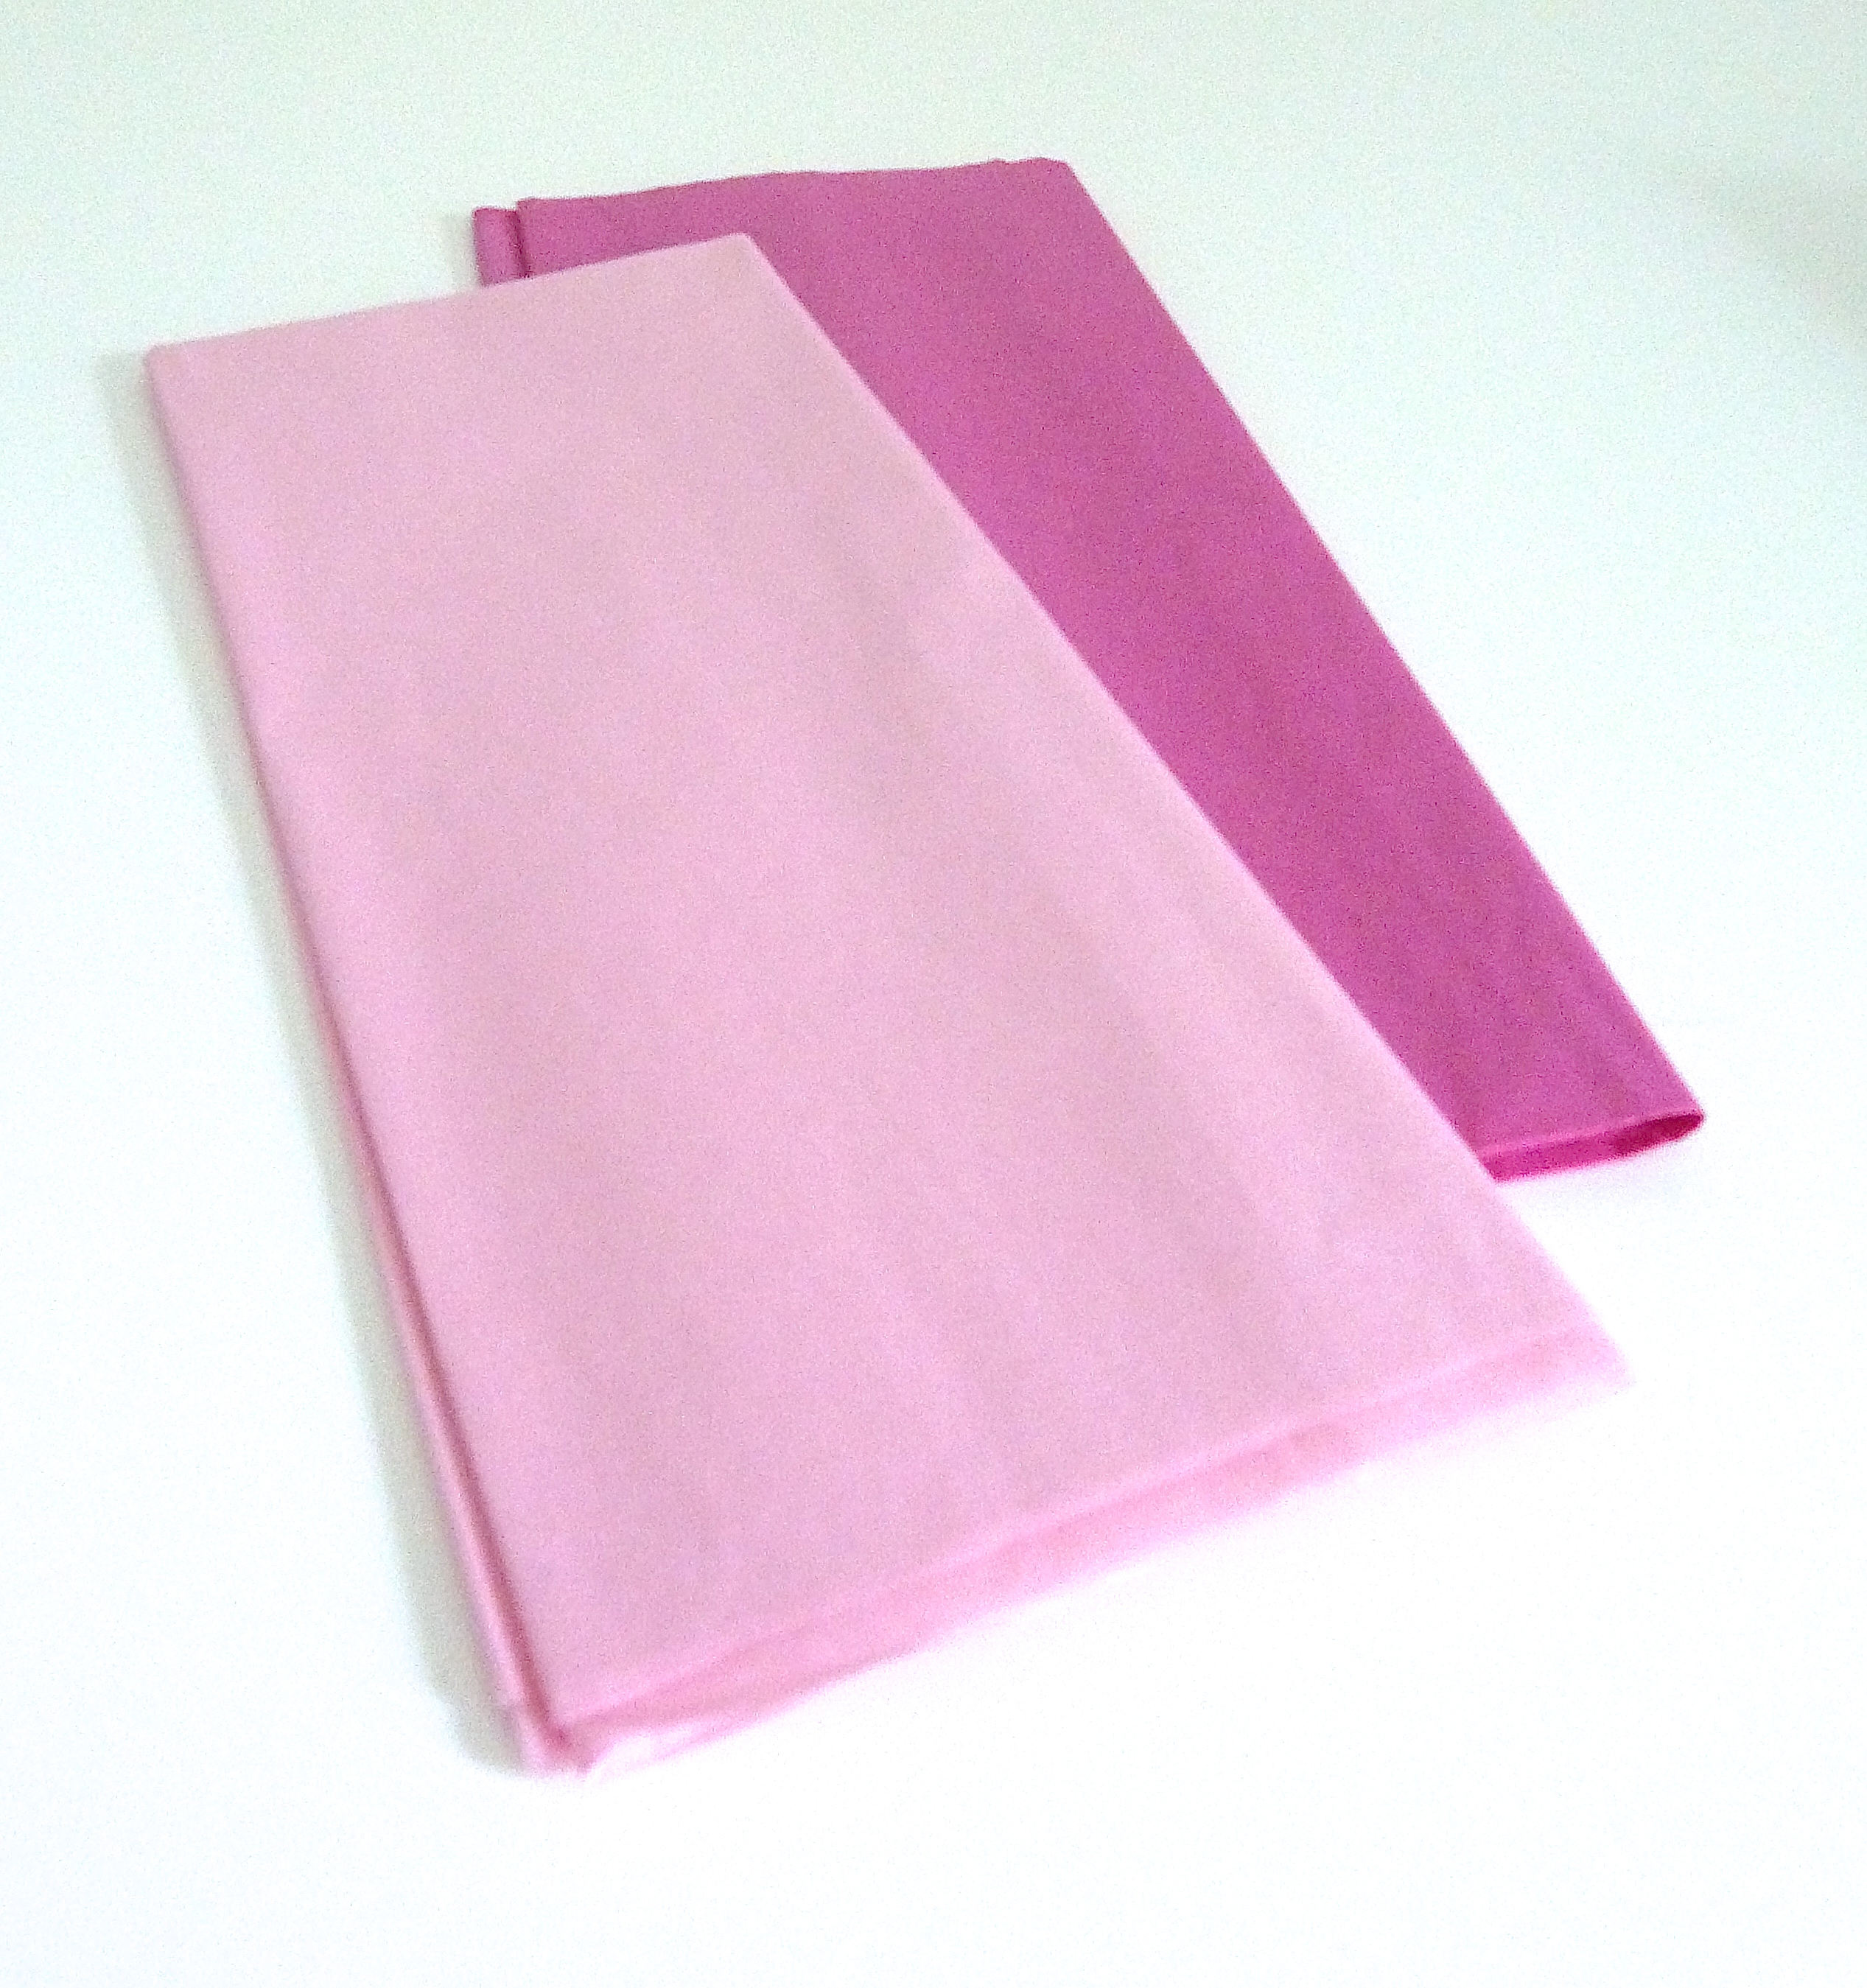 pink tissue paper cheap 2018 online shopping for popular & hot pink tissue paper fan from home & garden, party diy decorations, figurines & miniatures and more related pink tissue paper fan like pink tissue paper fan.